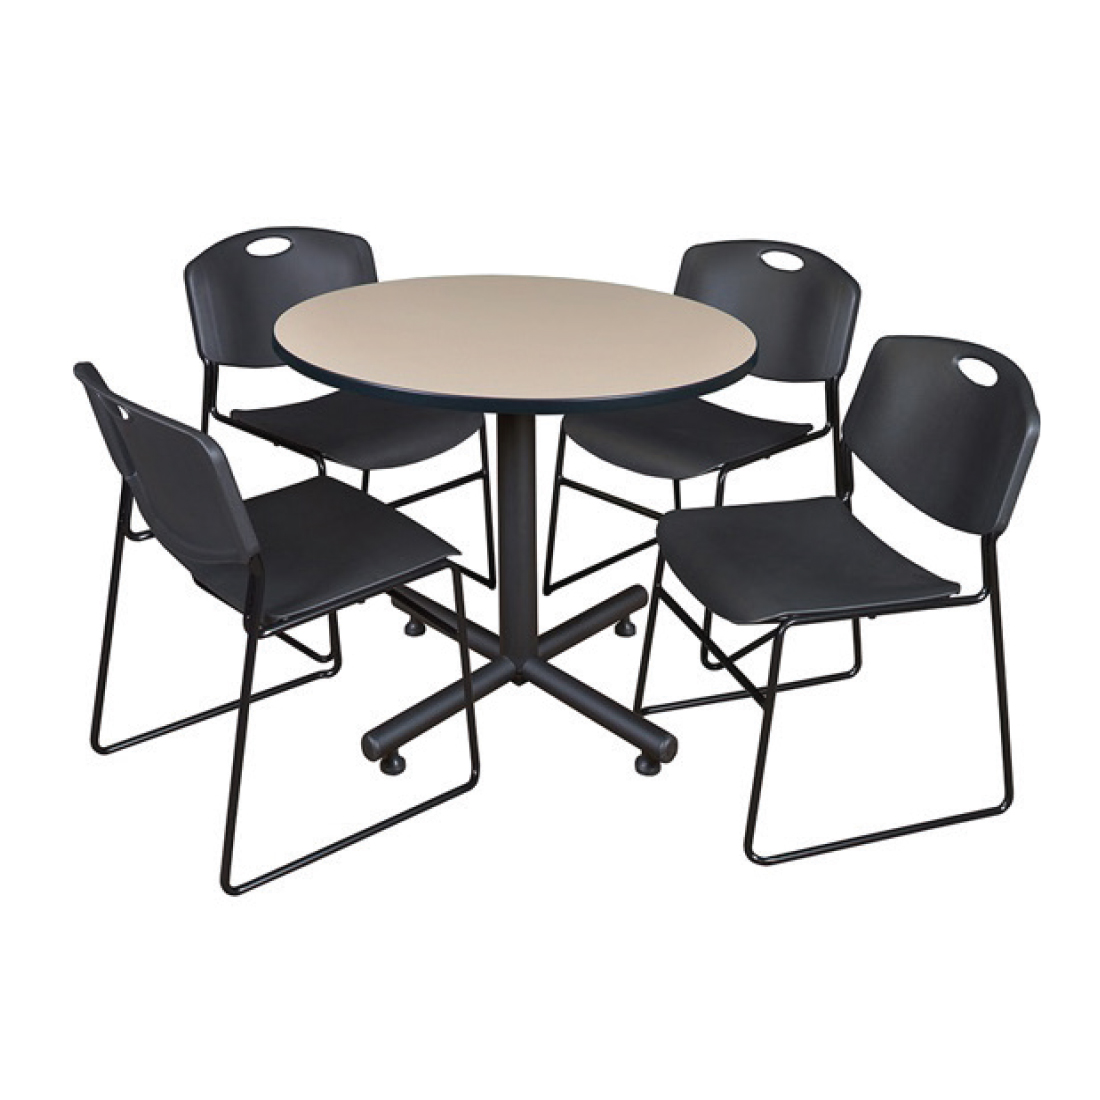 Breakroom, Adjustable Tables + Stands